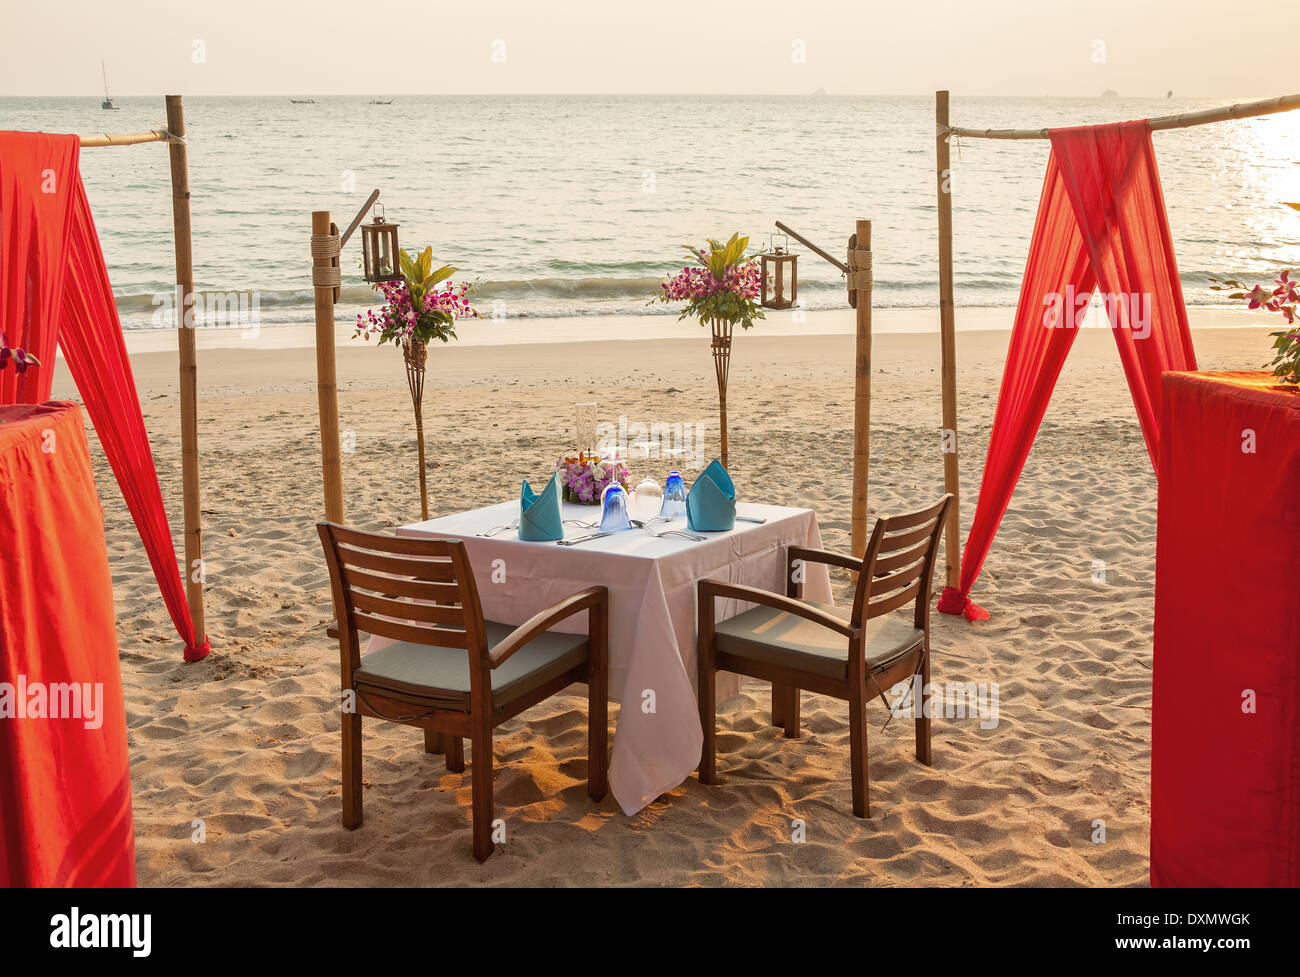 Restaurant table for two - Romantic Evening Table For Two Persons On The Beach